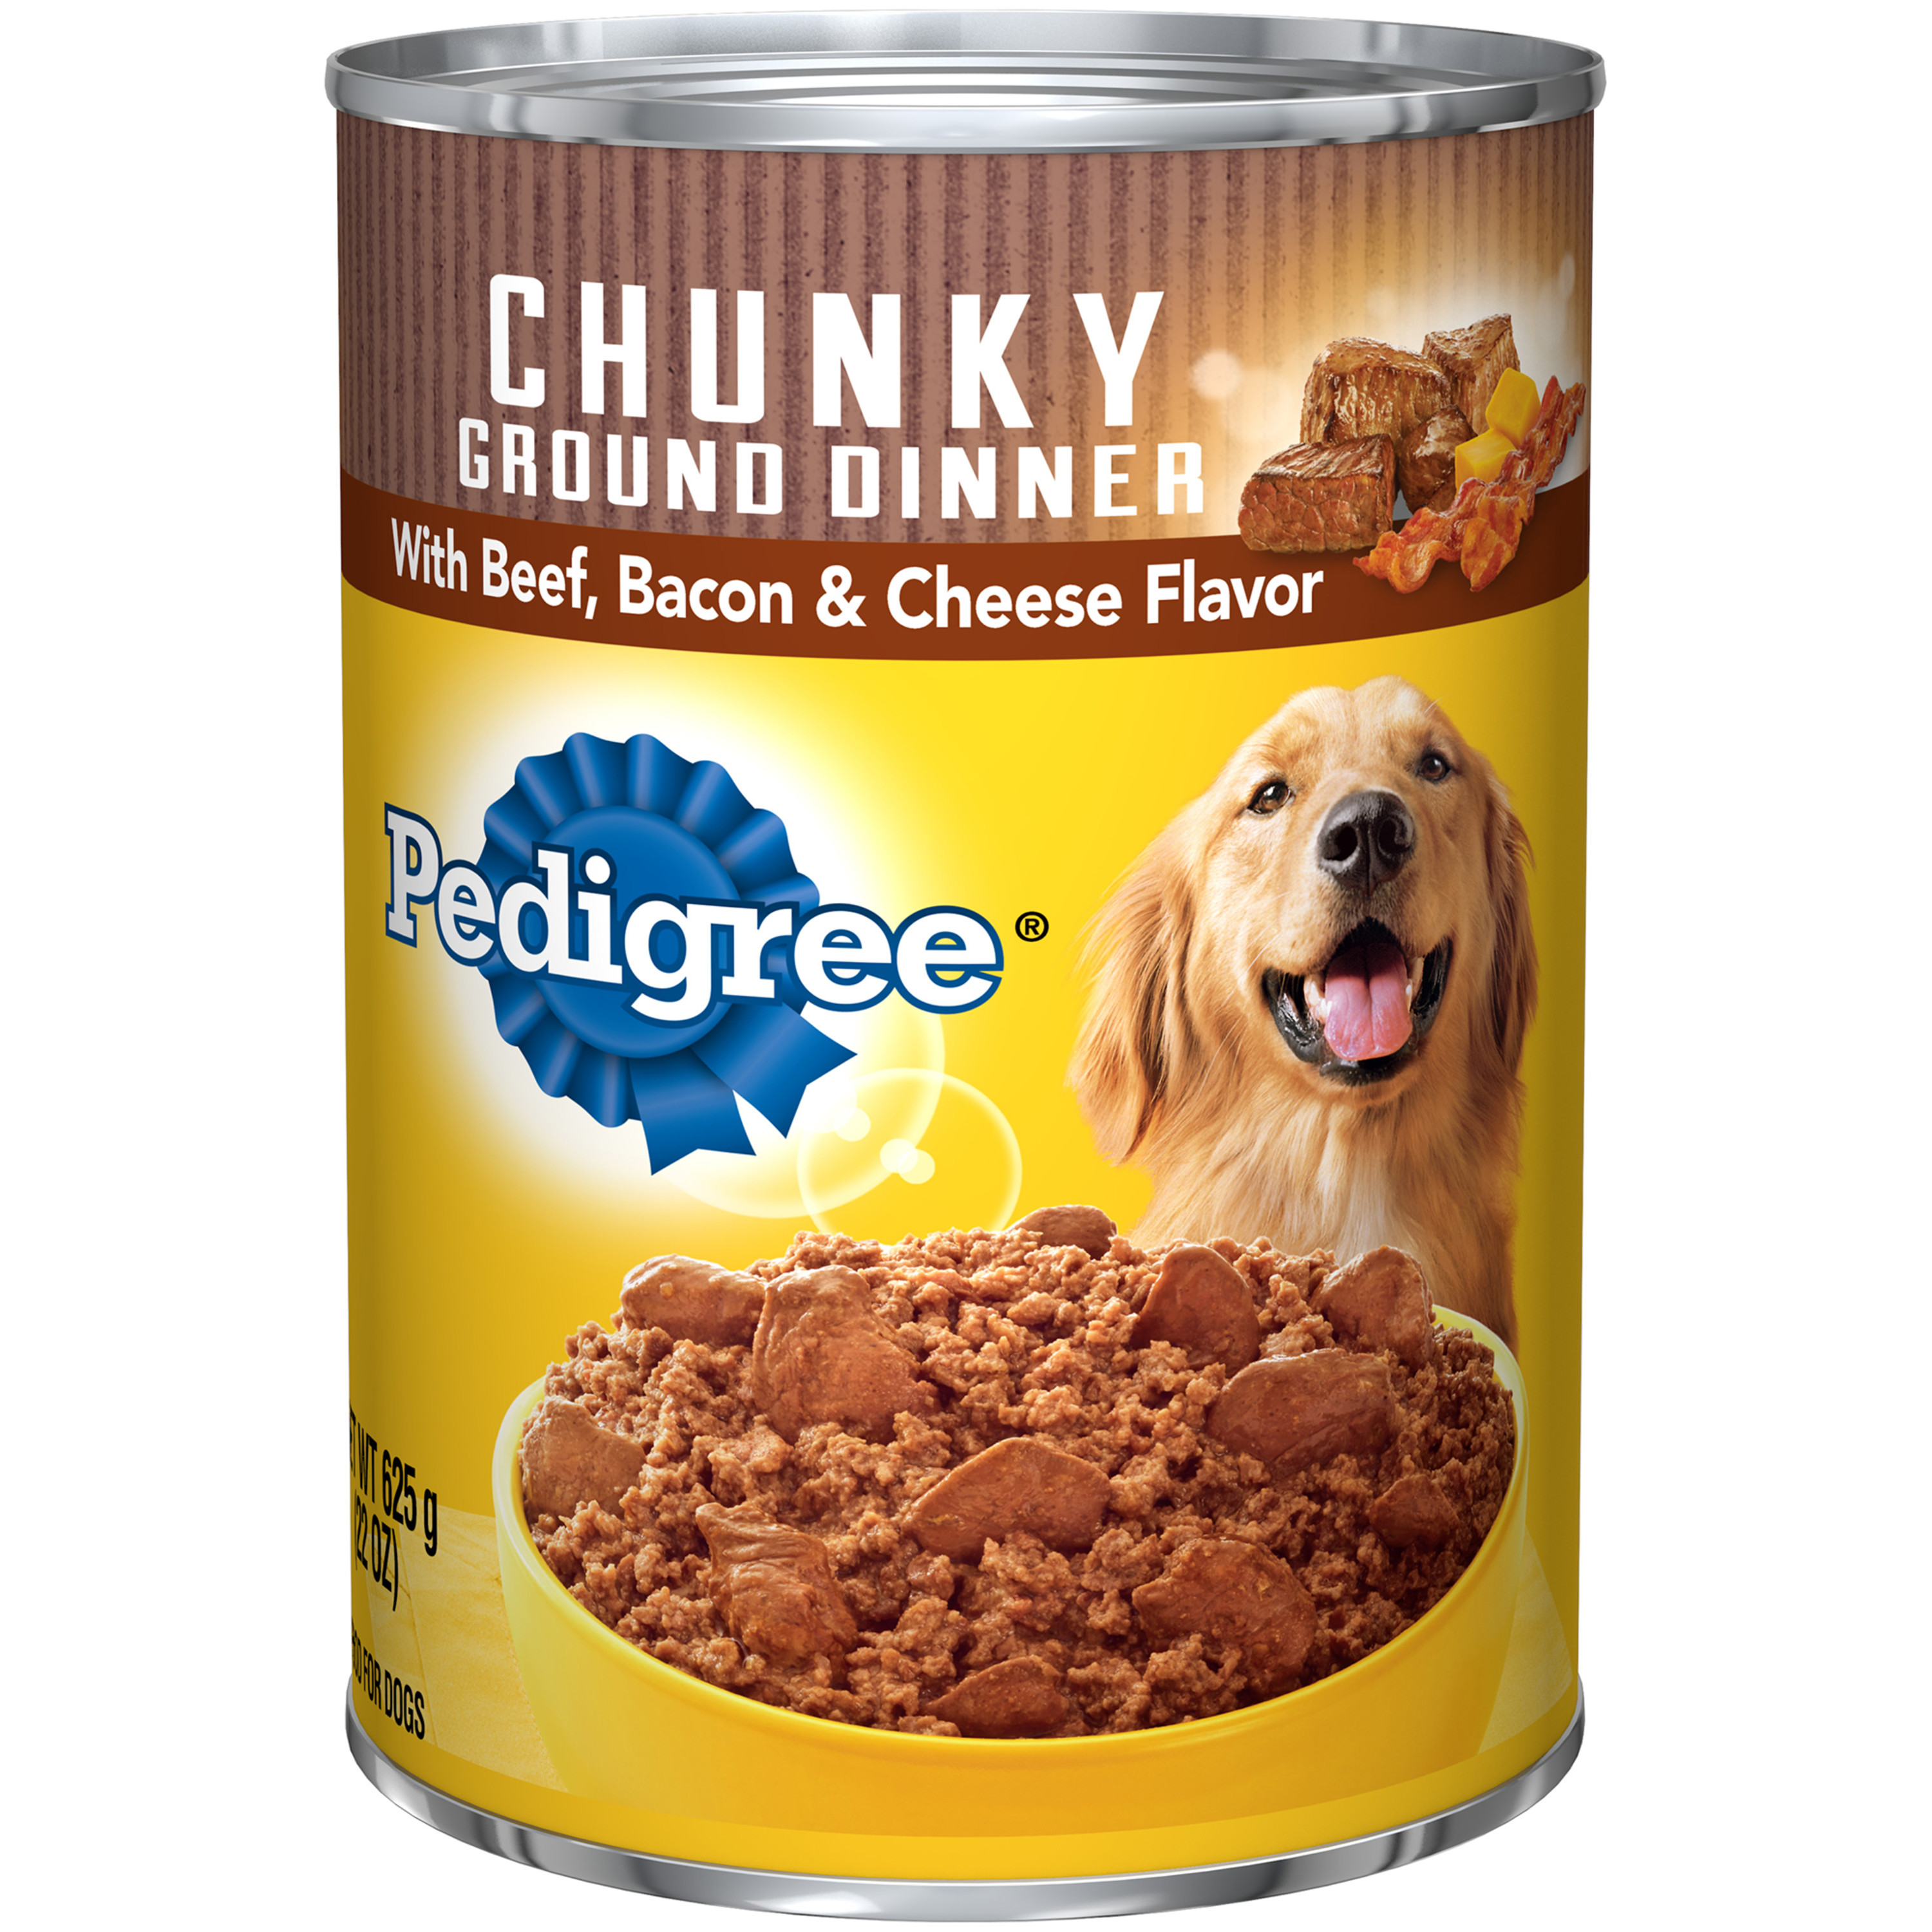 PEDIGREE Chunky Ground Dinner With Beef, Bacon & Cheese Flavor Adult Canned Wet Dog Food, 22 oz. Can